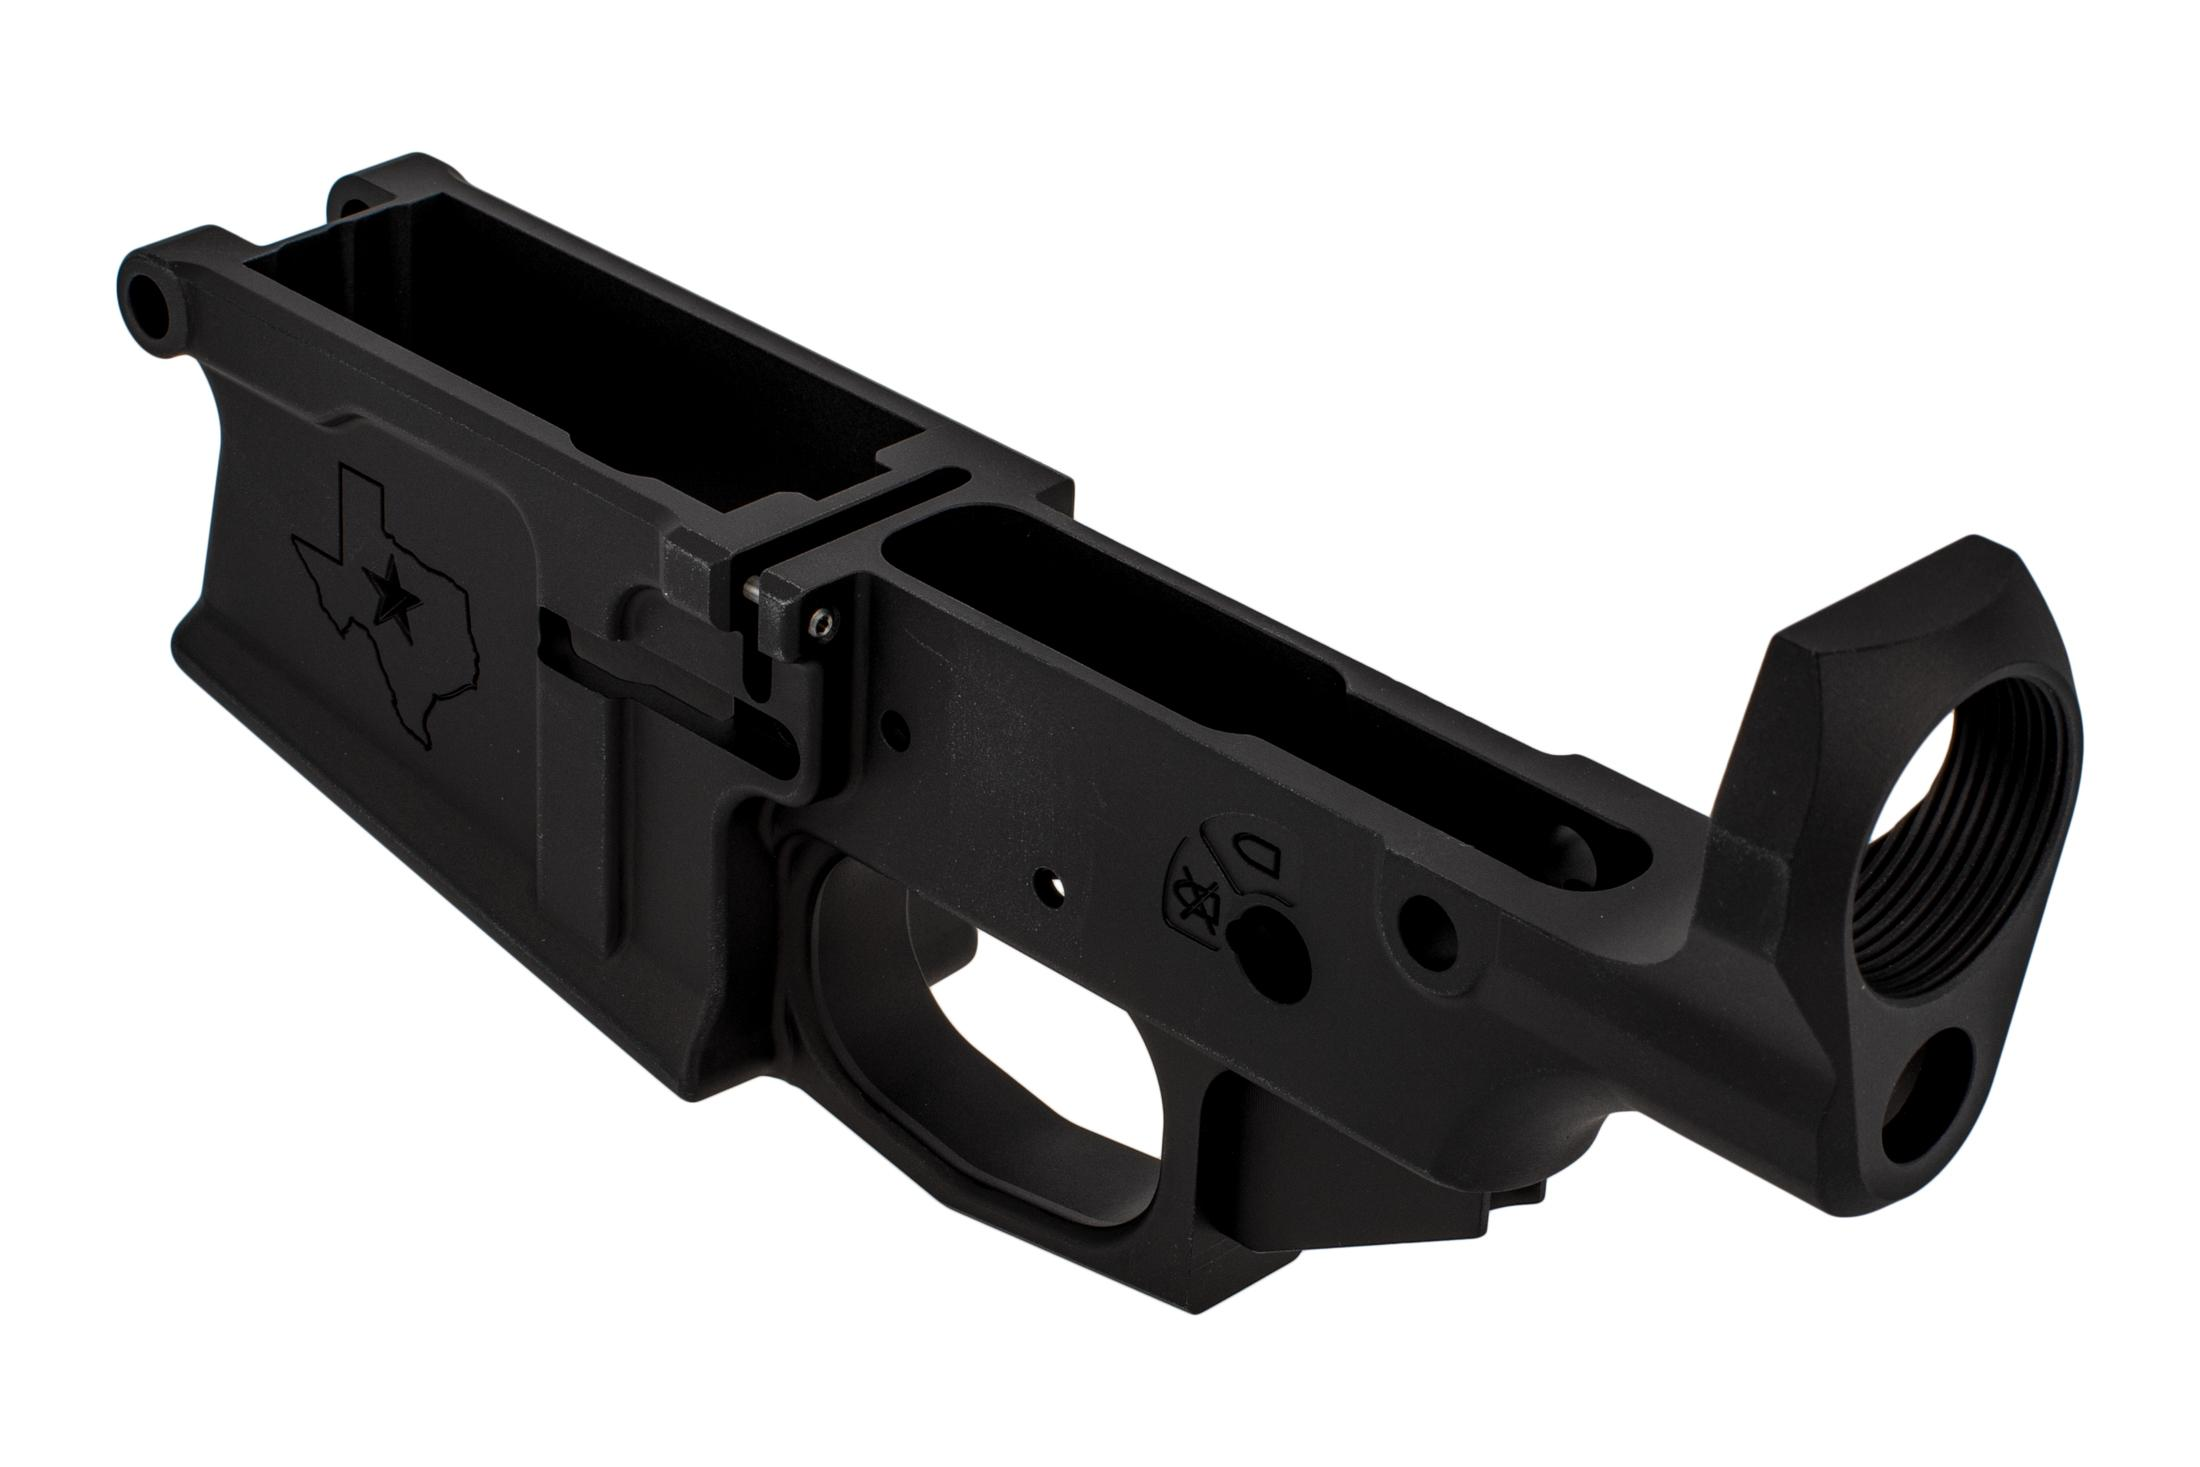 Aero Precision stripped M5 Texas Edition lower features a convenient threaded bolt catch pin and integral guard.